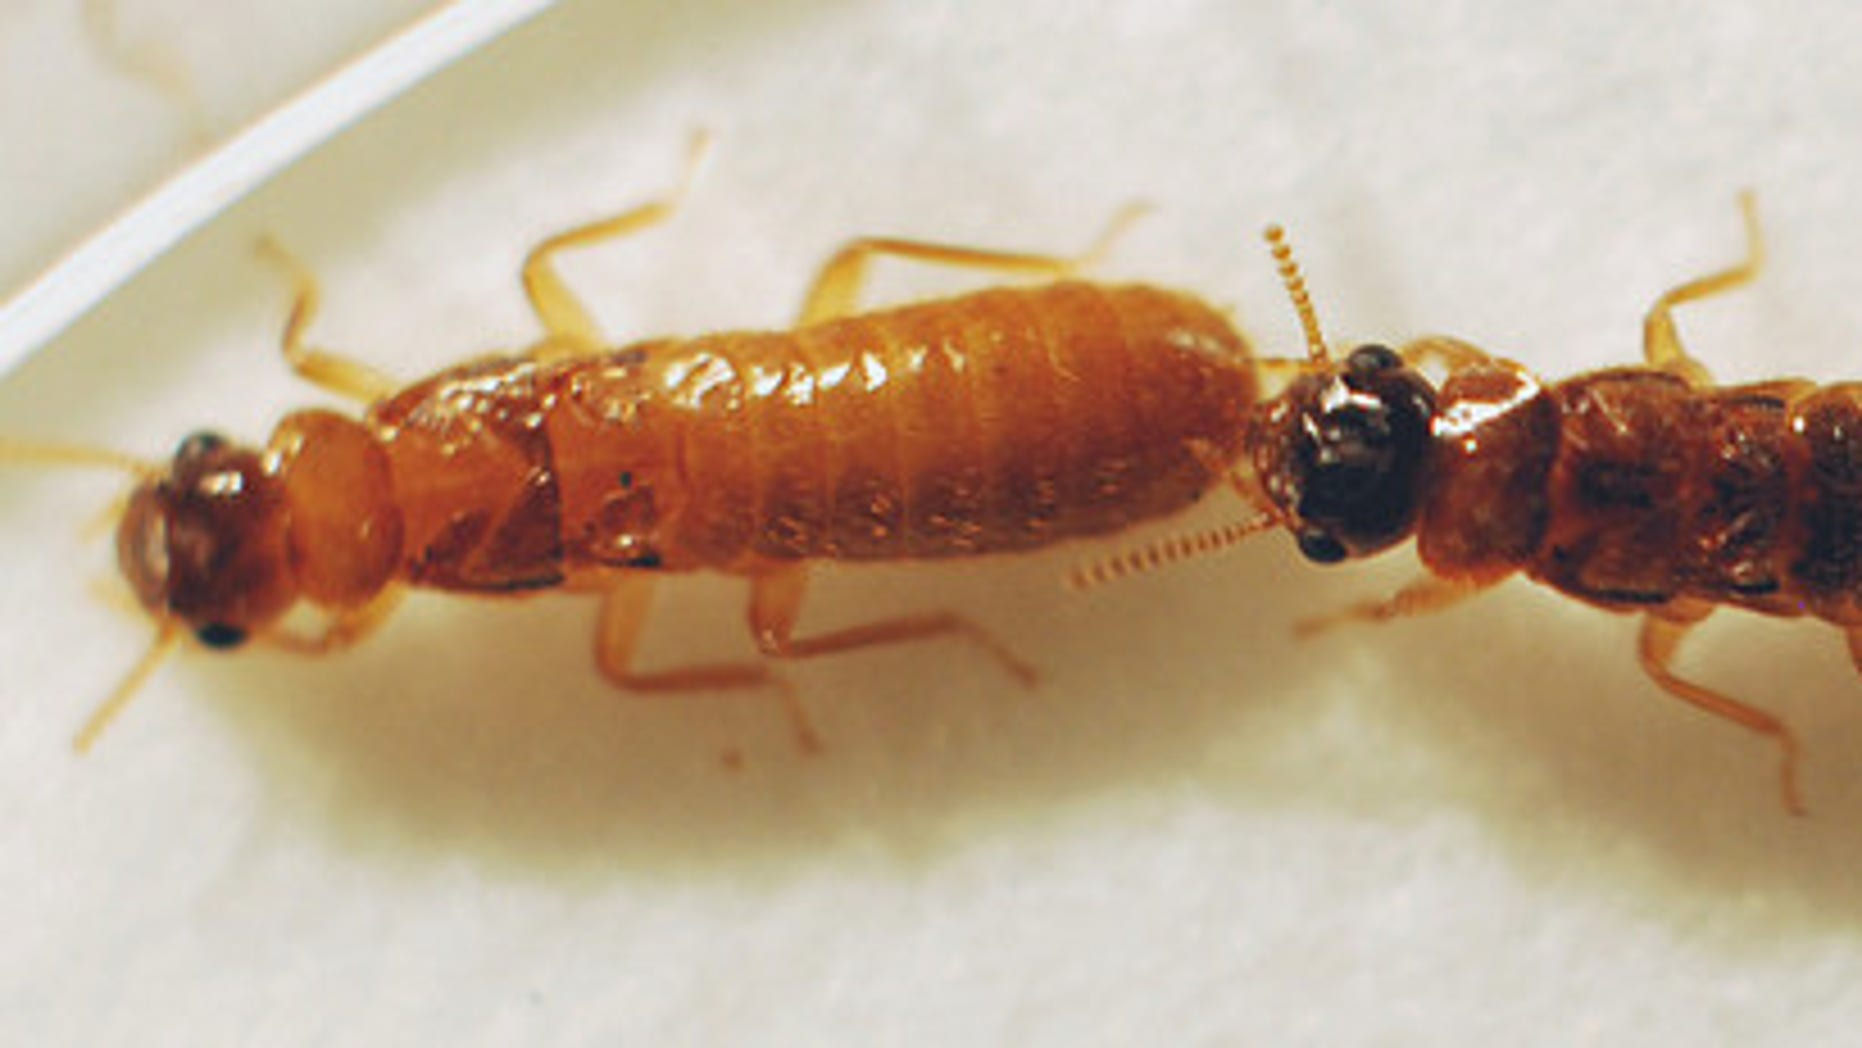 A male Asian termite (right) and female Formosan termite (left) mating together.